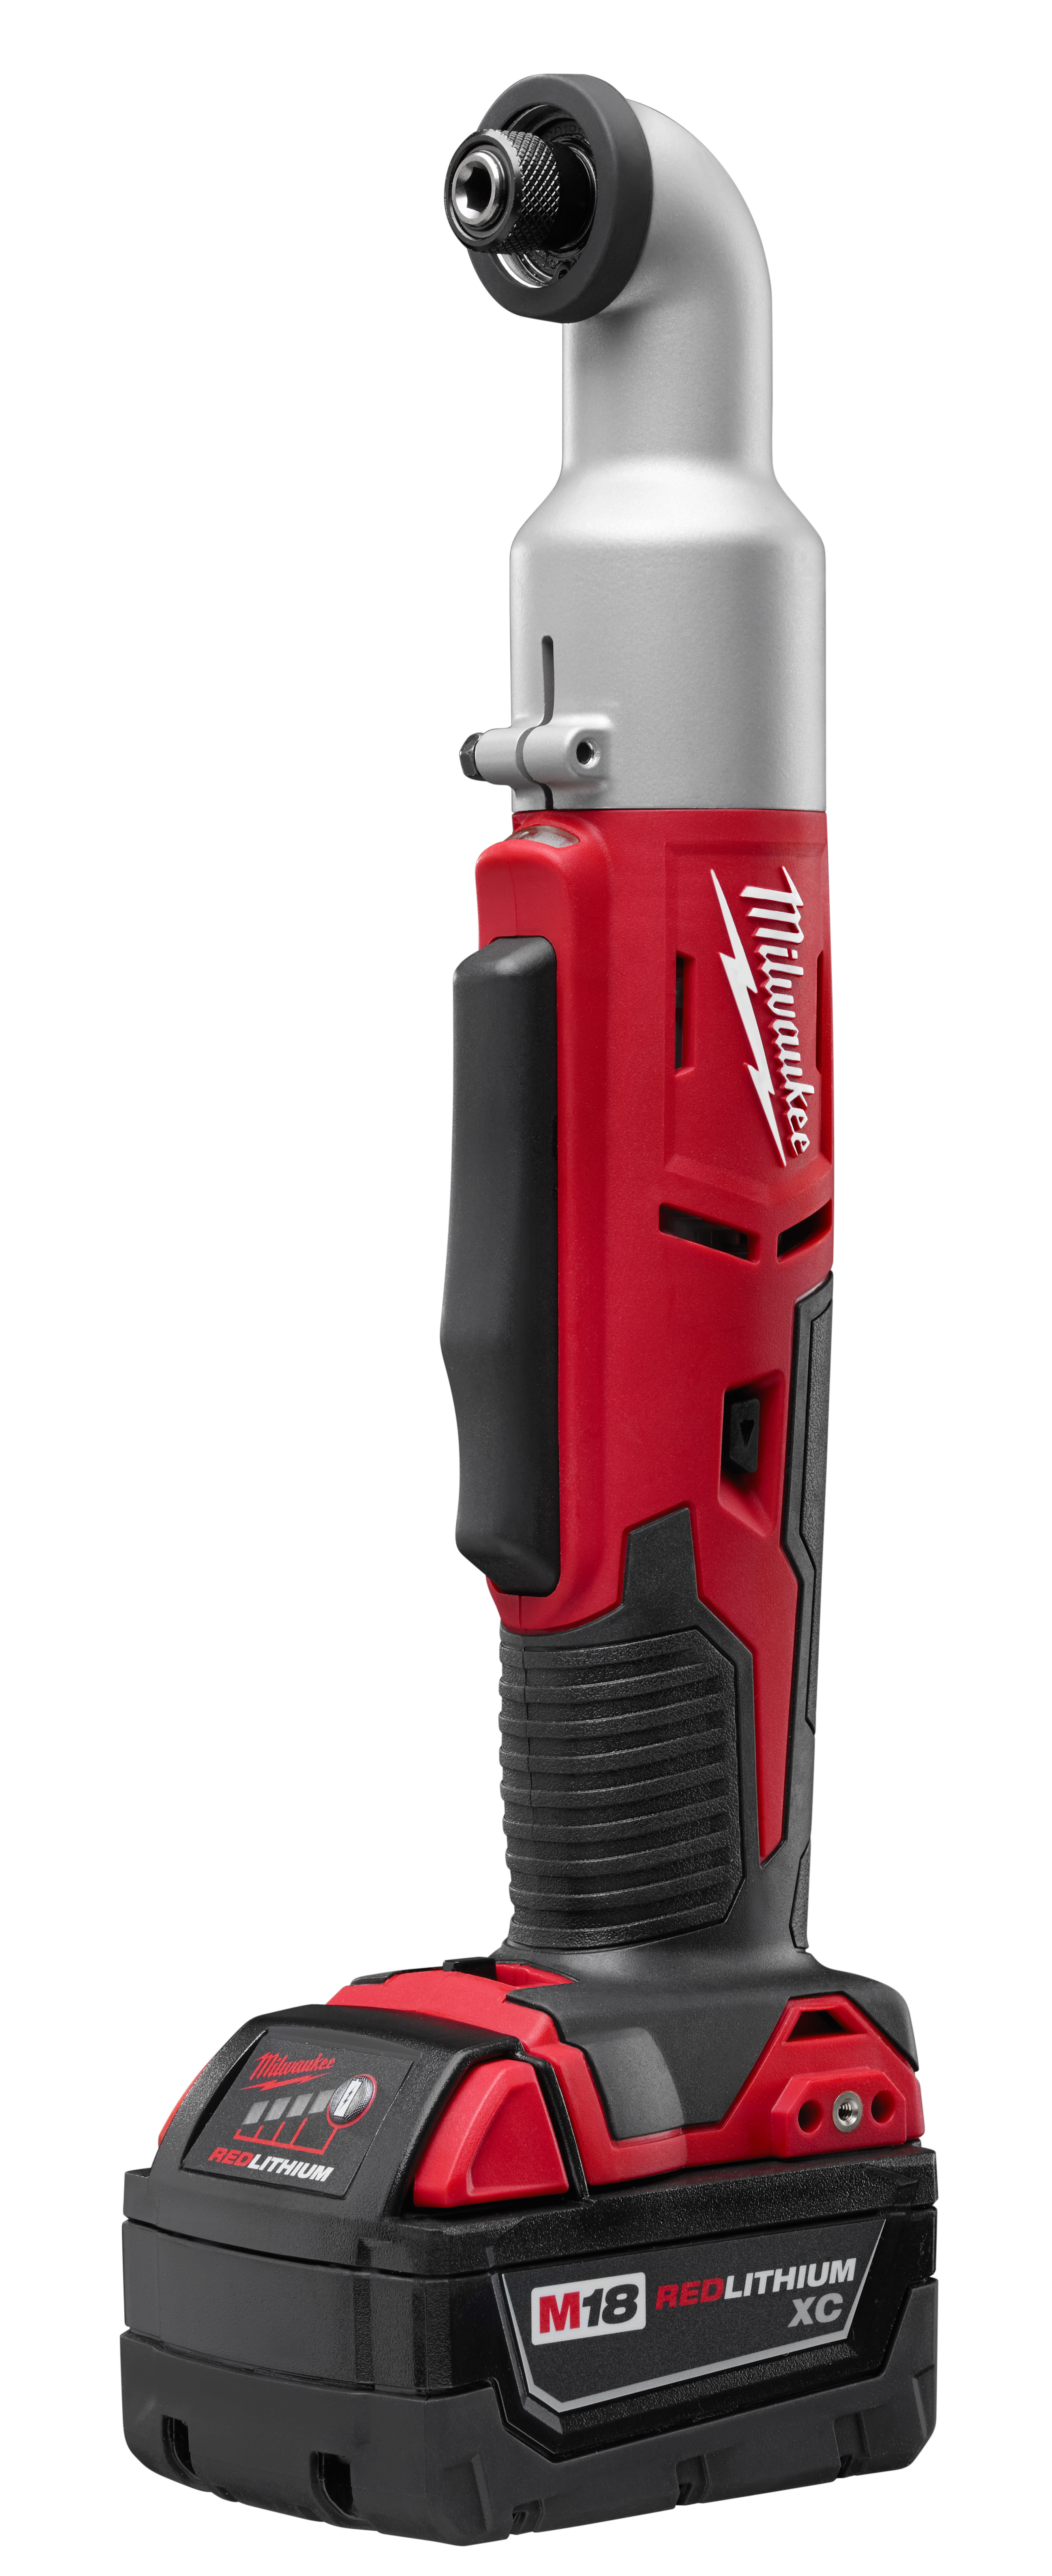 Milwaukee® M18™ 2667-22 2-Speed Compact Right Angle Cordless Impact Driver Kit, 1/4 in Hex Drive, 2400 bpm Mode 1, 3400 bpm Mode 2, 350 in-lb (Mode 1), 675 in-lb (Mode 2) Torque, 18 VAC, 14-1/8 in OAL